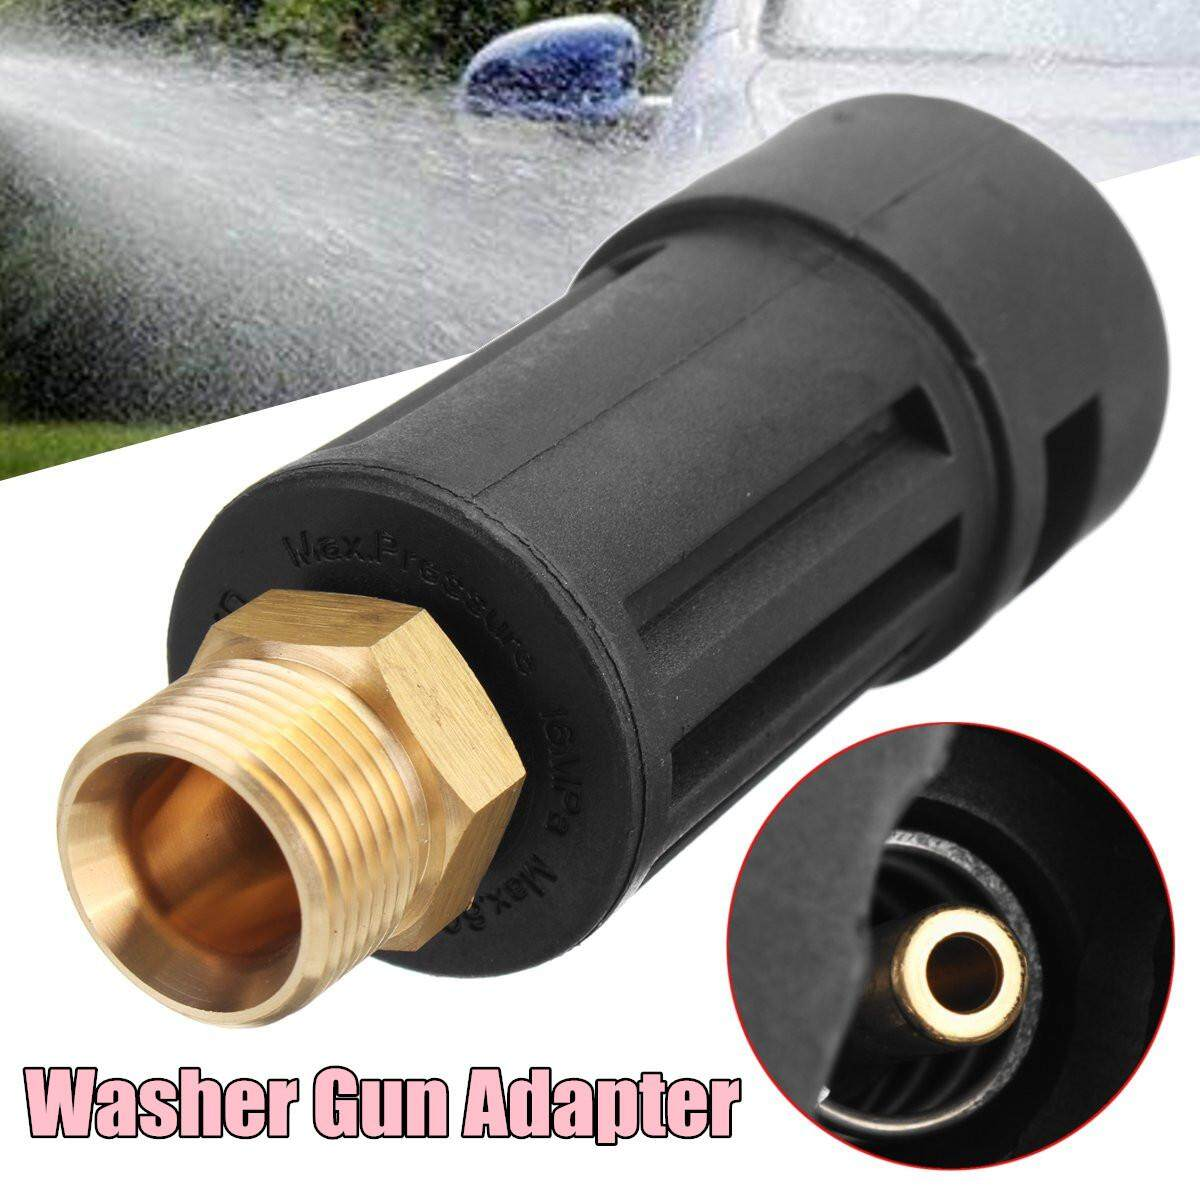 Pressure Washer Lance Fitting Adapter For Karcher K-series X M22M Inlet - intl